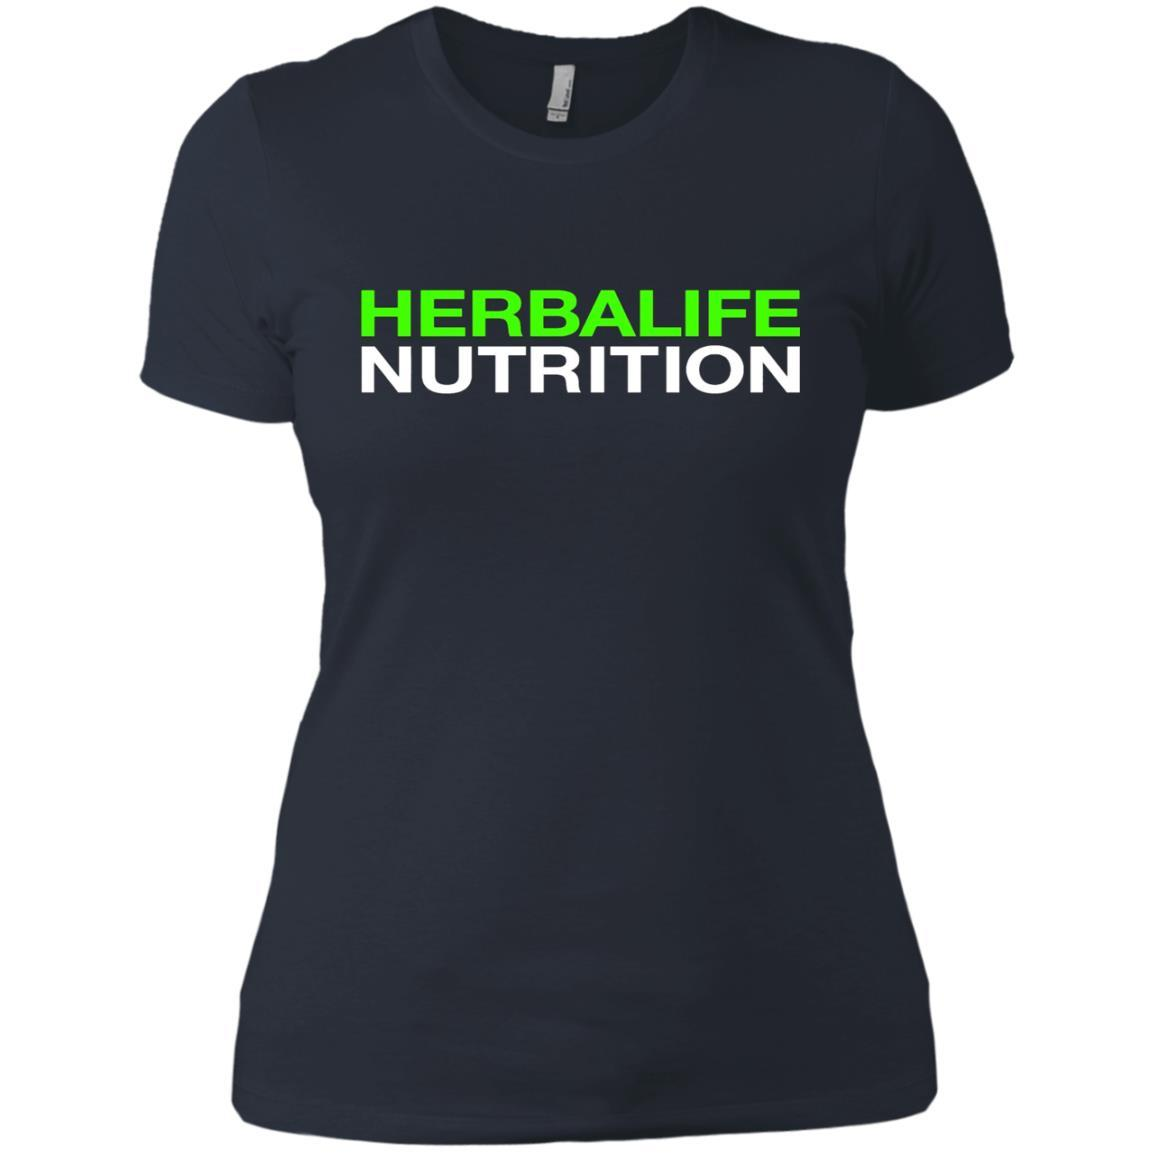 HERBALIFE NUTRITION - Ladies' Boyfriend T-Shirt Style / Color / Size